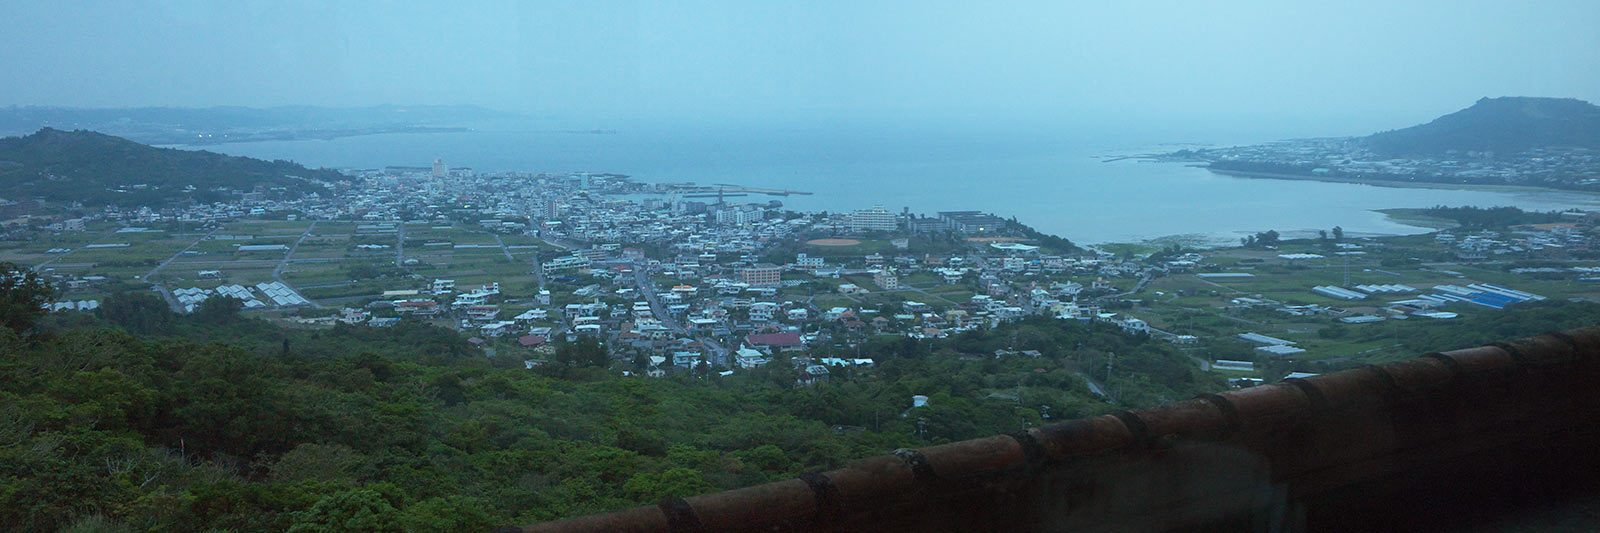 япония, Gangala valley, japan, okinawa, пещера, окинава, okinawa world